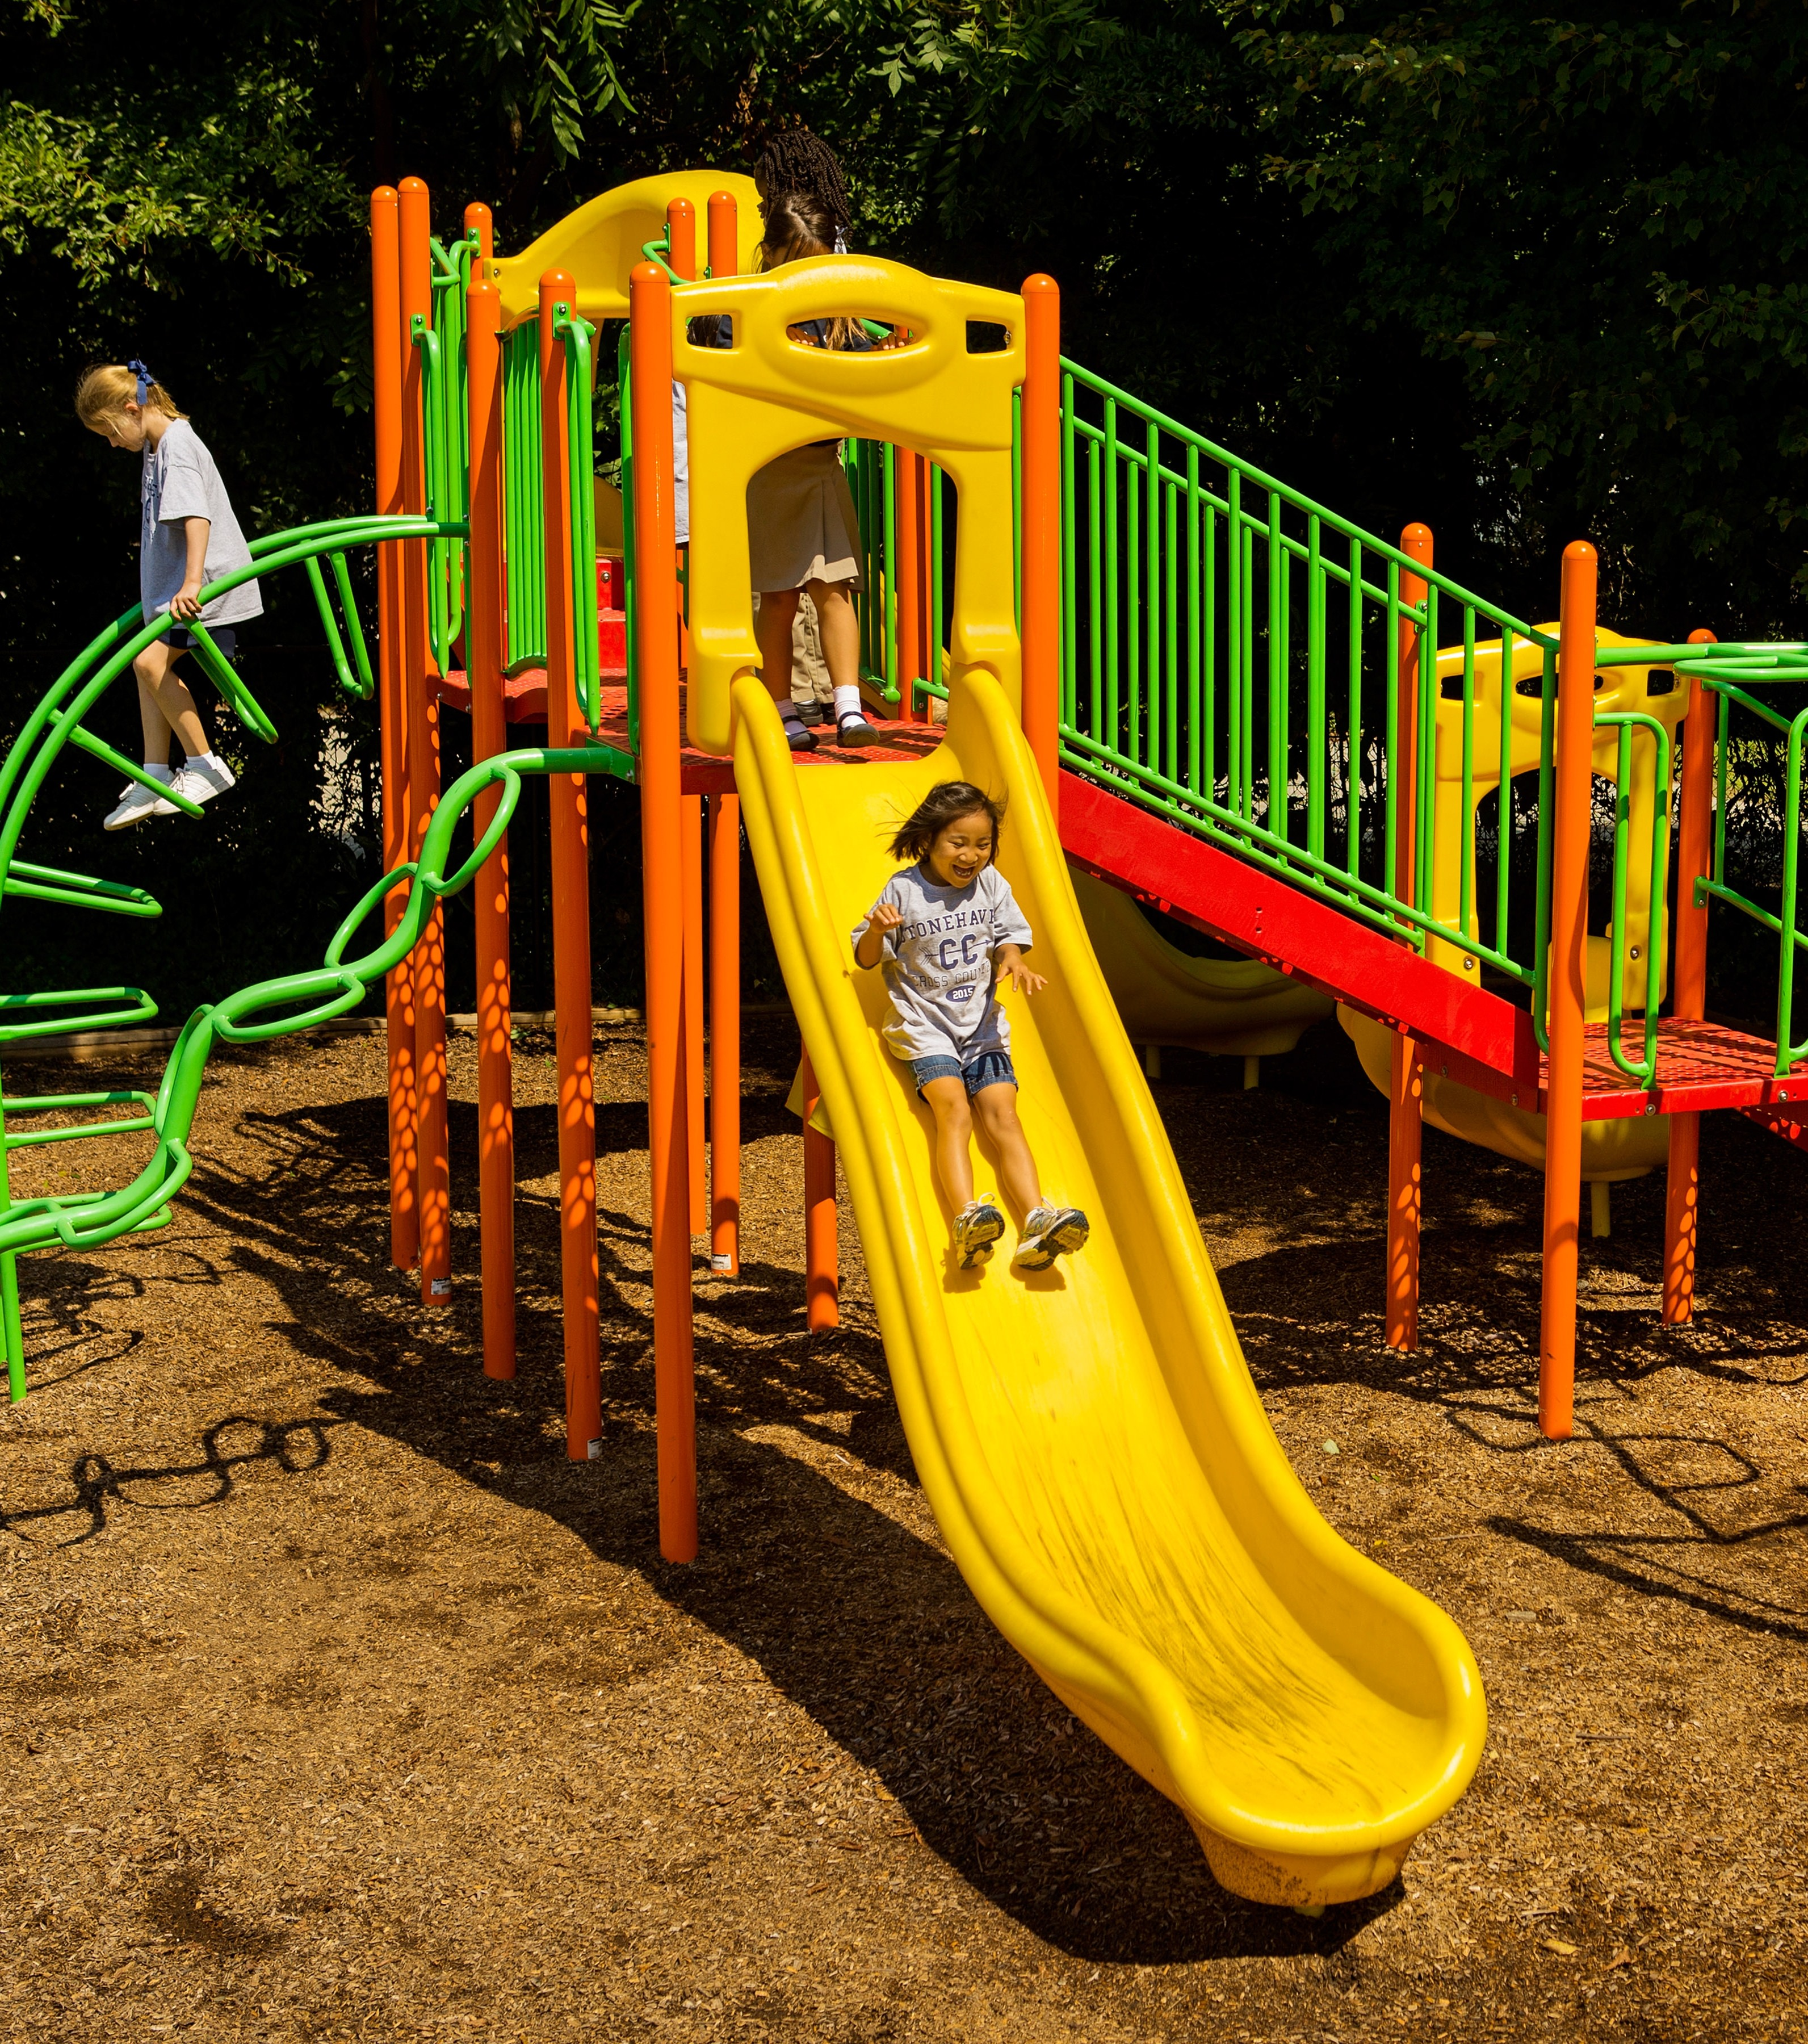 Metal playground slides are a great choice for areas with high vandalism rates.